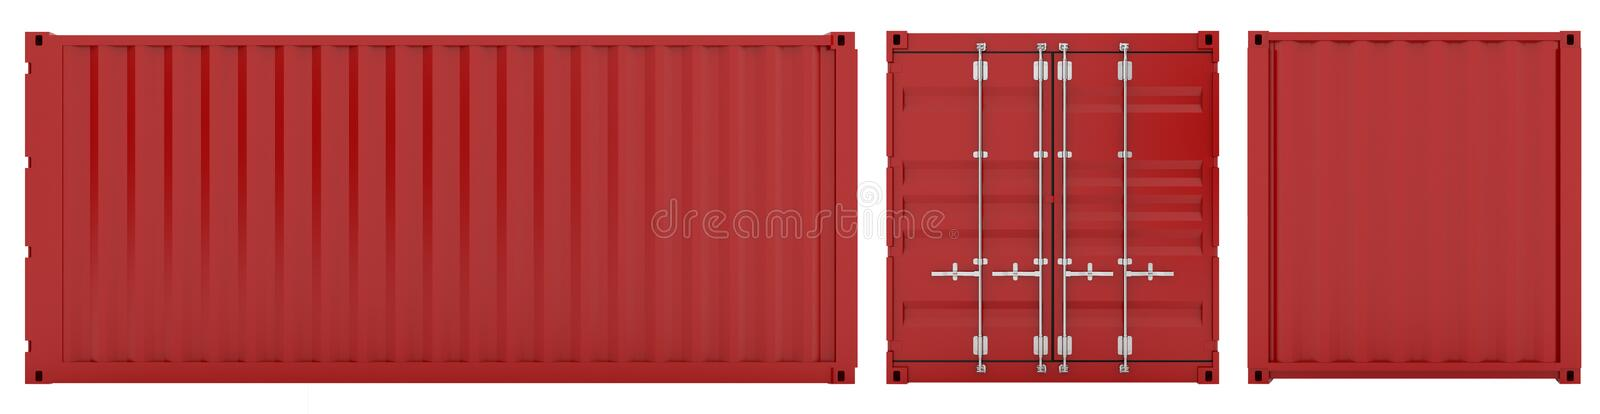 Download Cargo container stock illustration. Illustration of white - 16920880